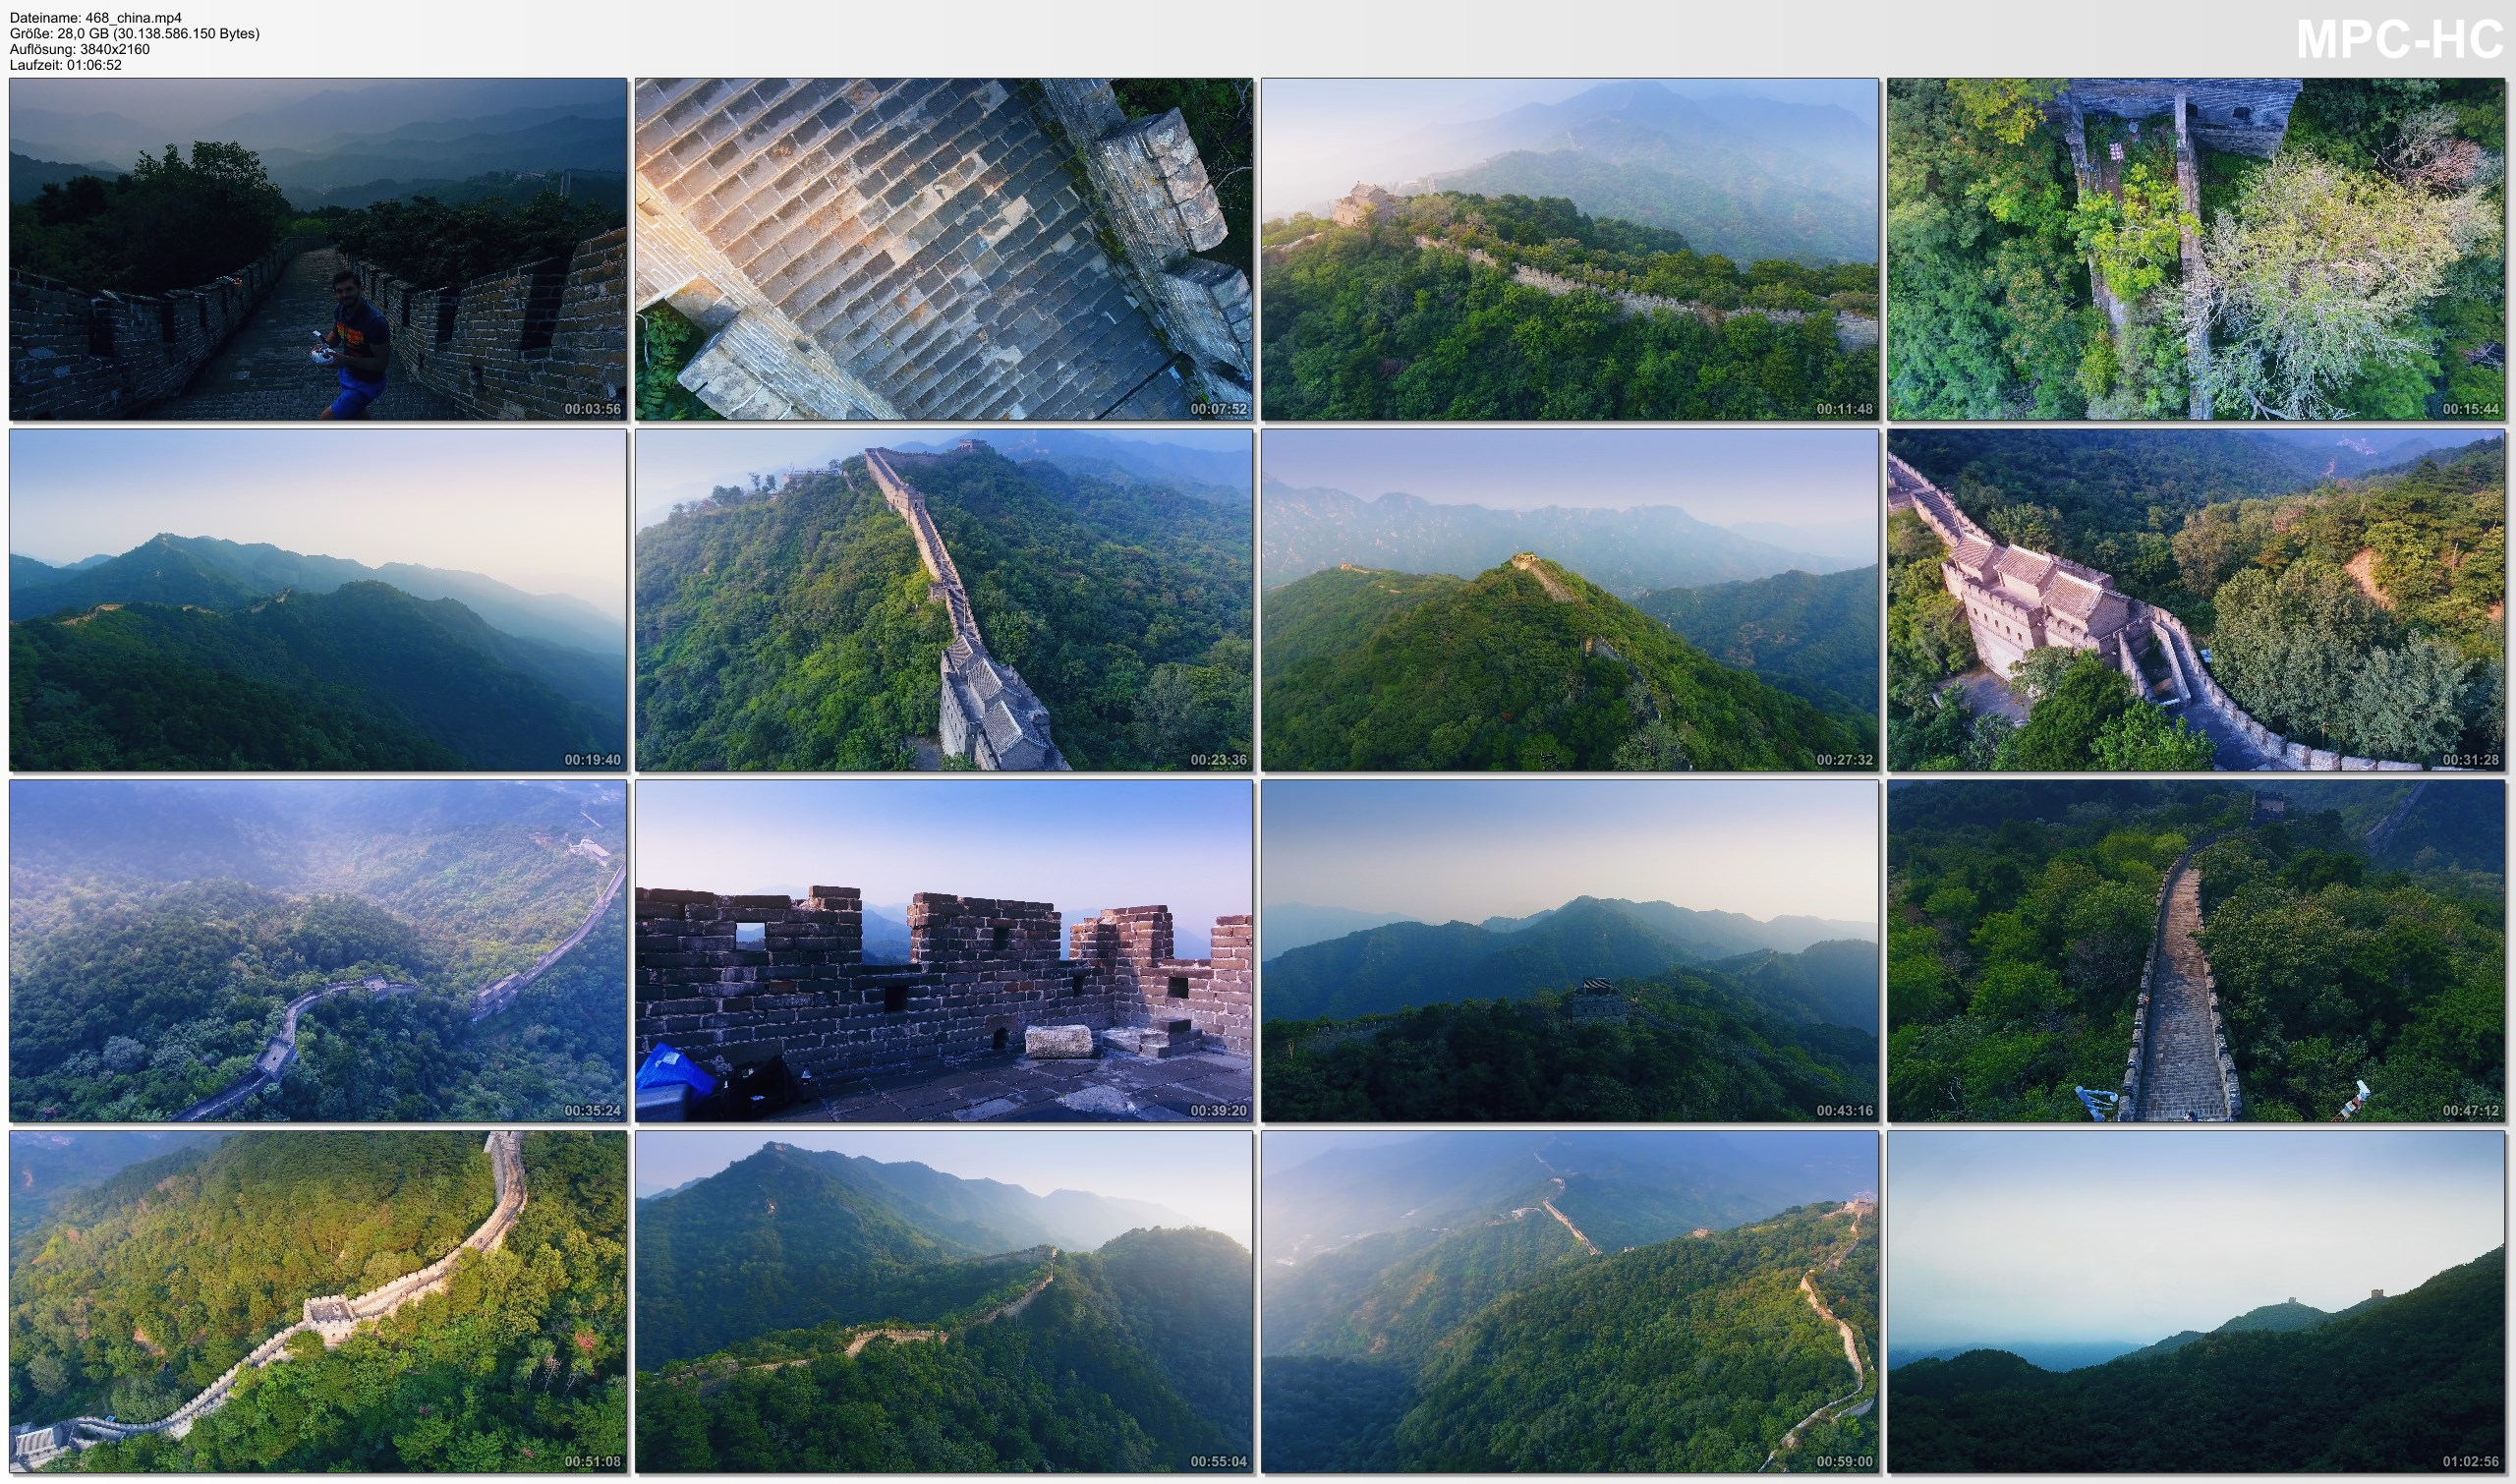 Drone Pictures from Video 【4K】Drone RAW Footage | This is the GREAT WALL CHINA 2020 | Mutianyu Jinshanling UltraHD Stock Video